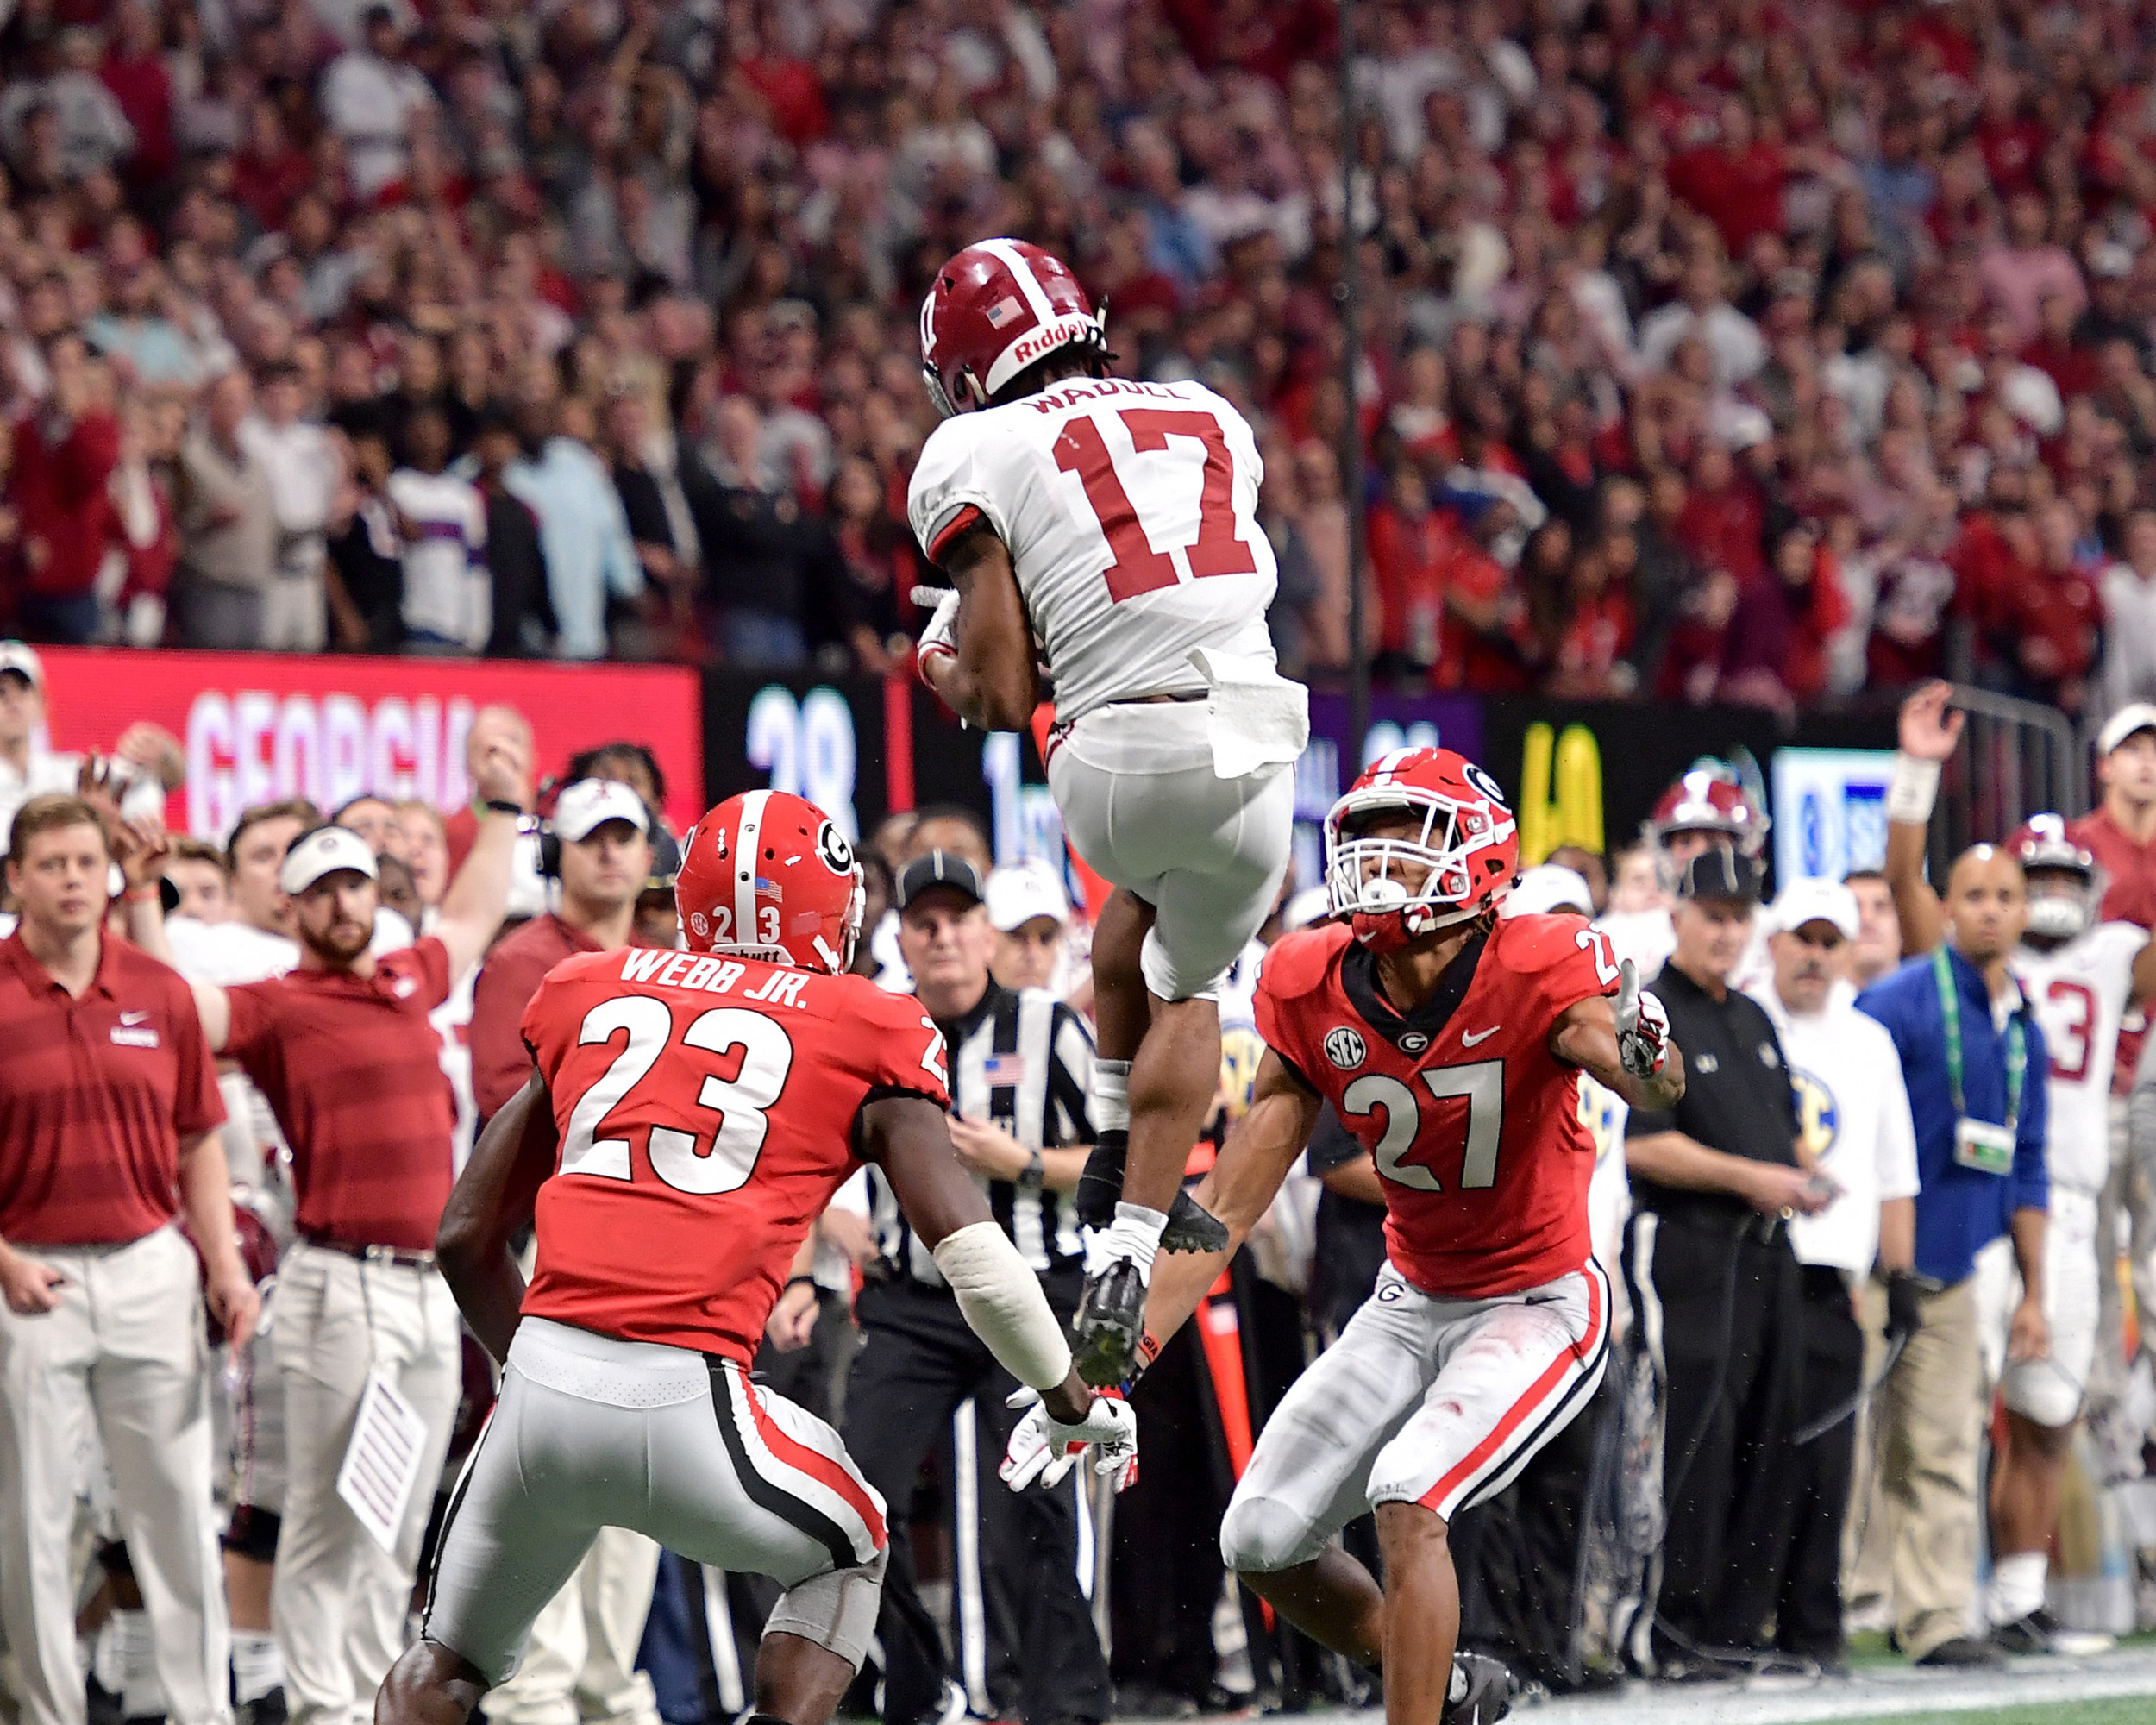 Alabama Crimson Tide wide receiver Jaylen Waddle (17) goes vertical to make an incredible catch in the fourth quarter of the 2018 SEC Championship football game against the Georgia Bulldogs at Mercedes-Benz Stadium in Atlanta, Ga., on Dec. 1, 2018. Alabama wins 35-28. (Photo by Lee Walls)